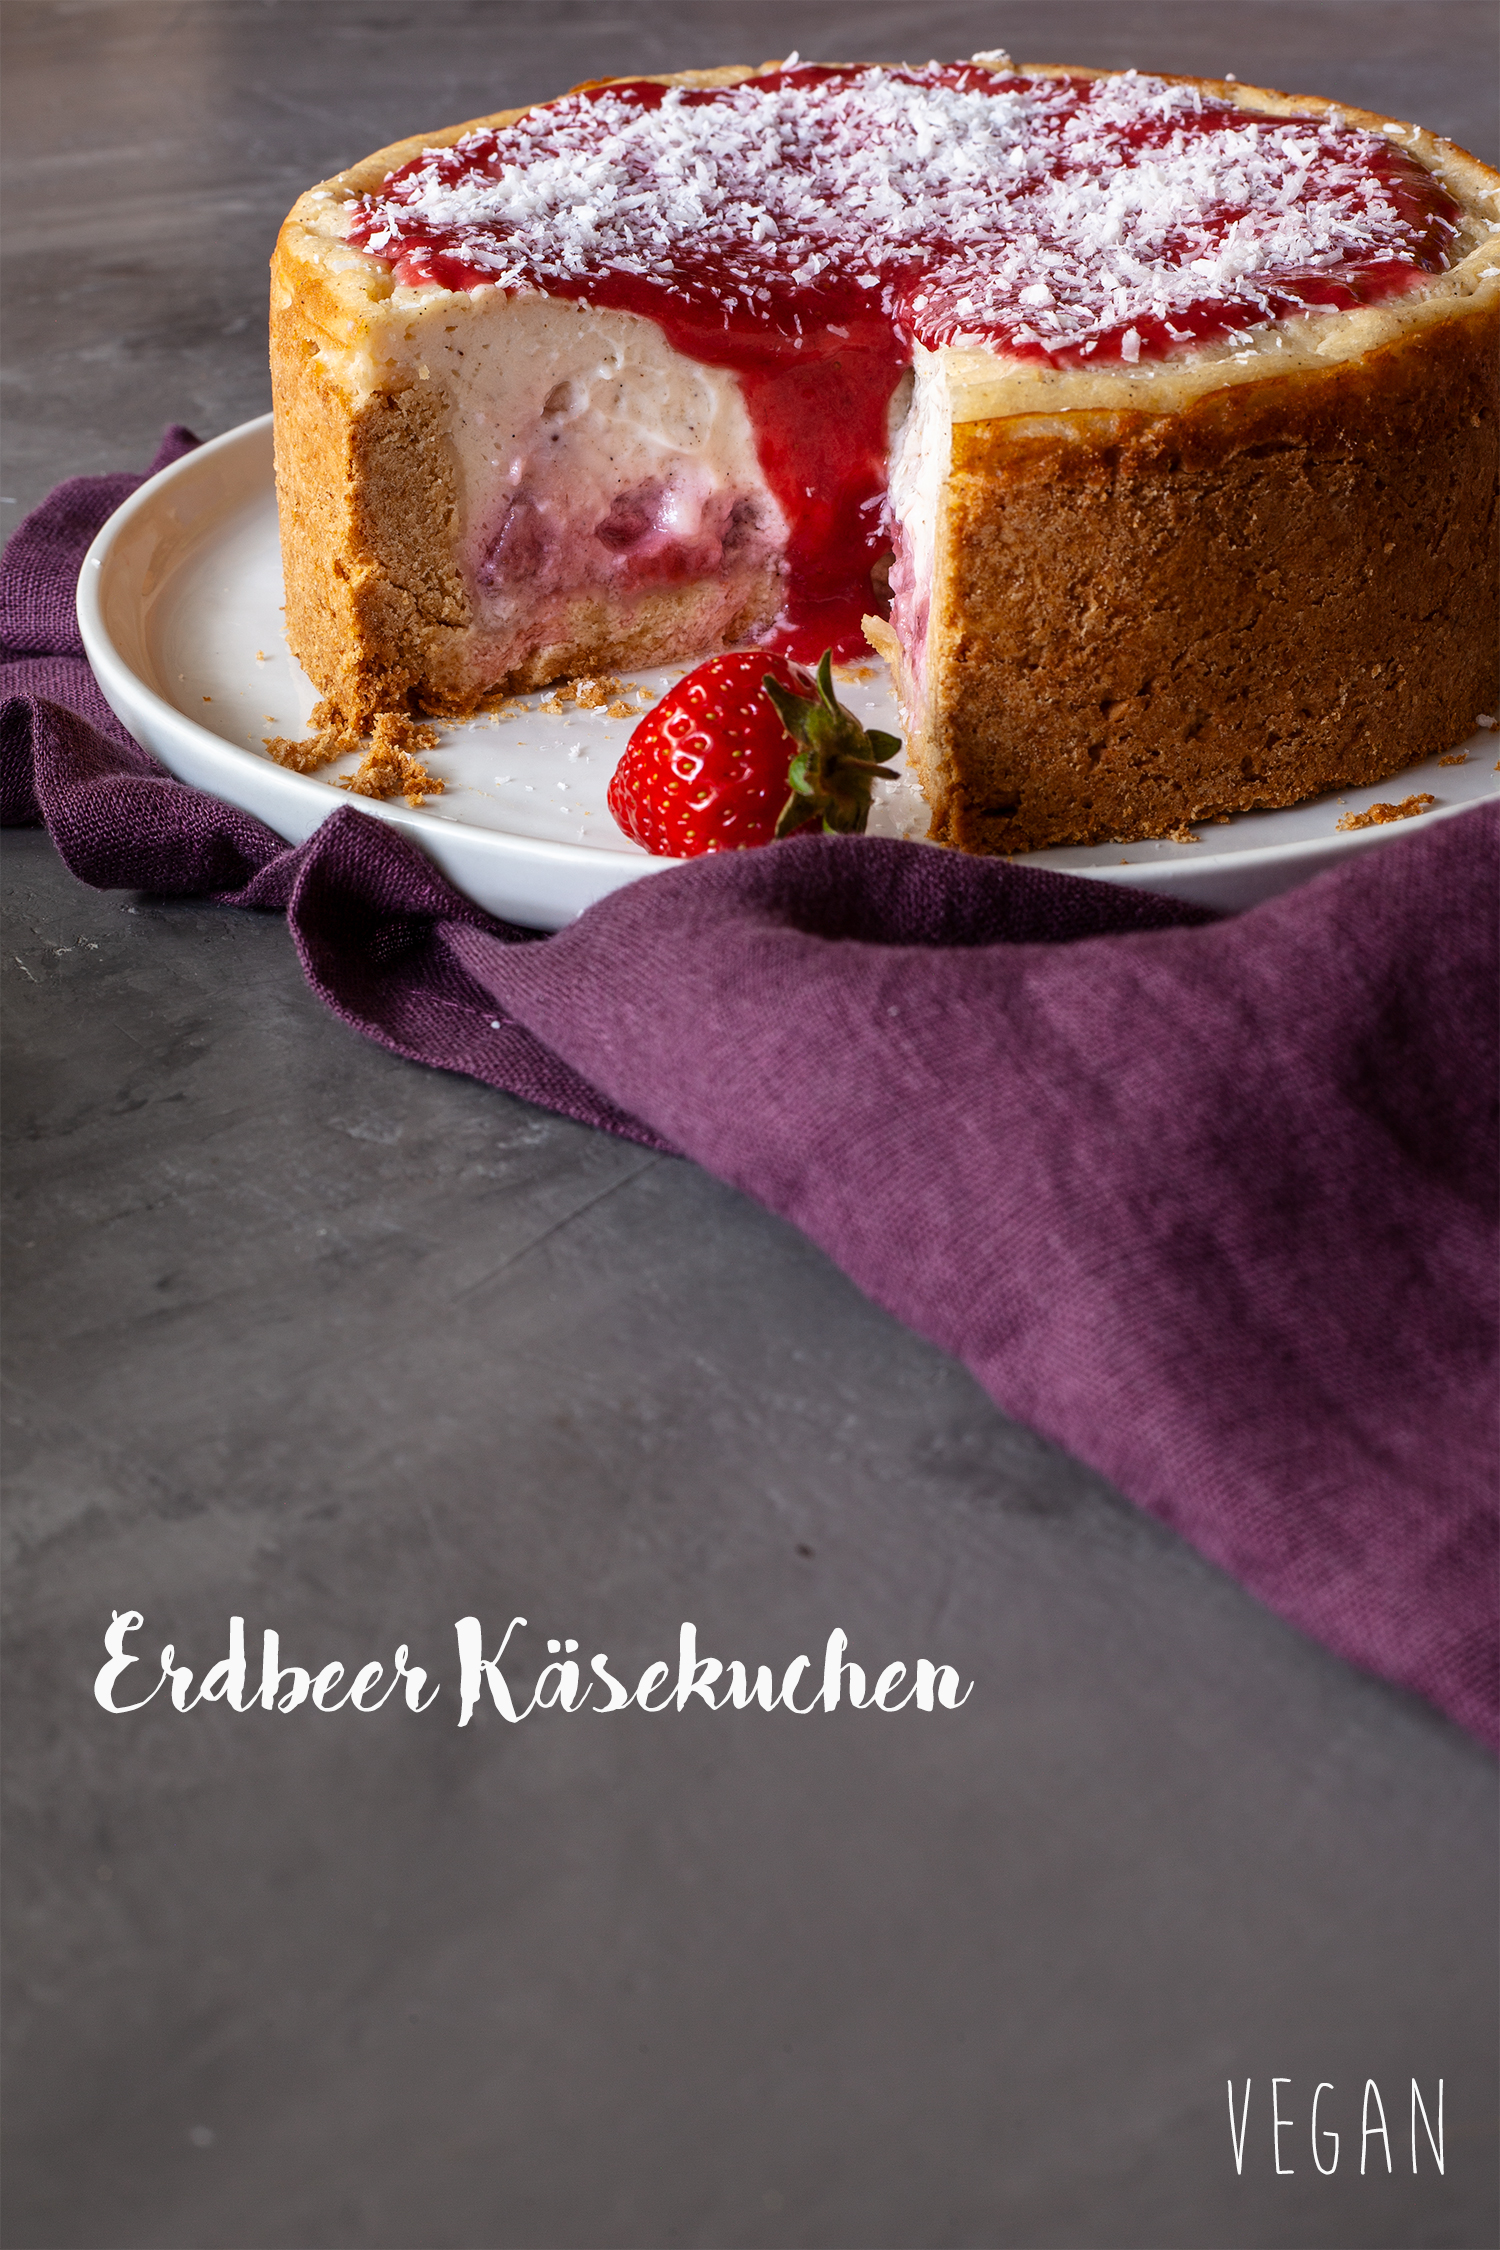 Strawberry Cheesecake vegan